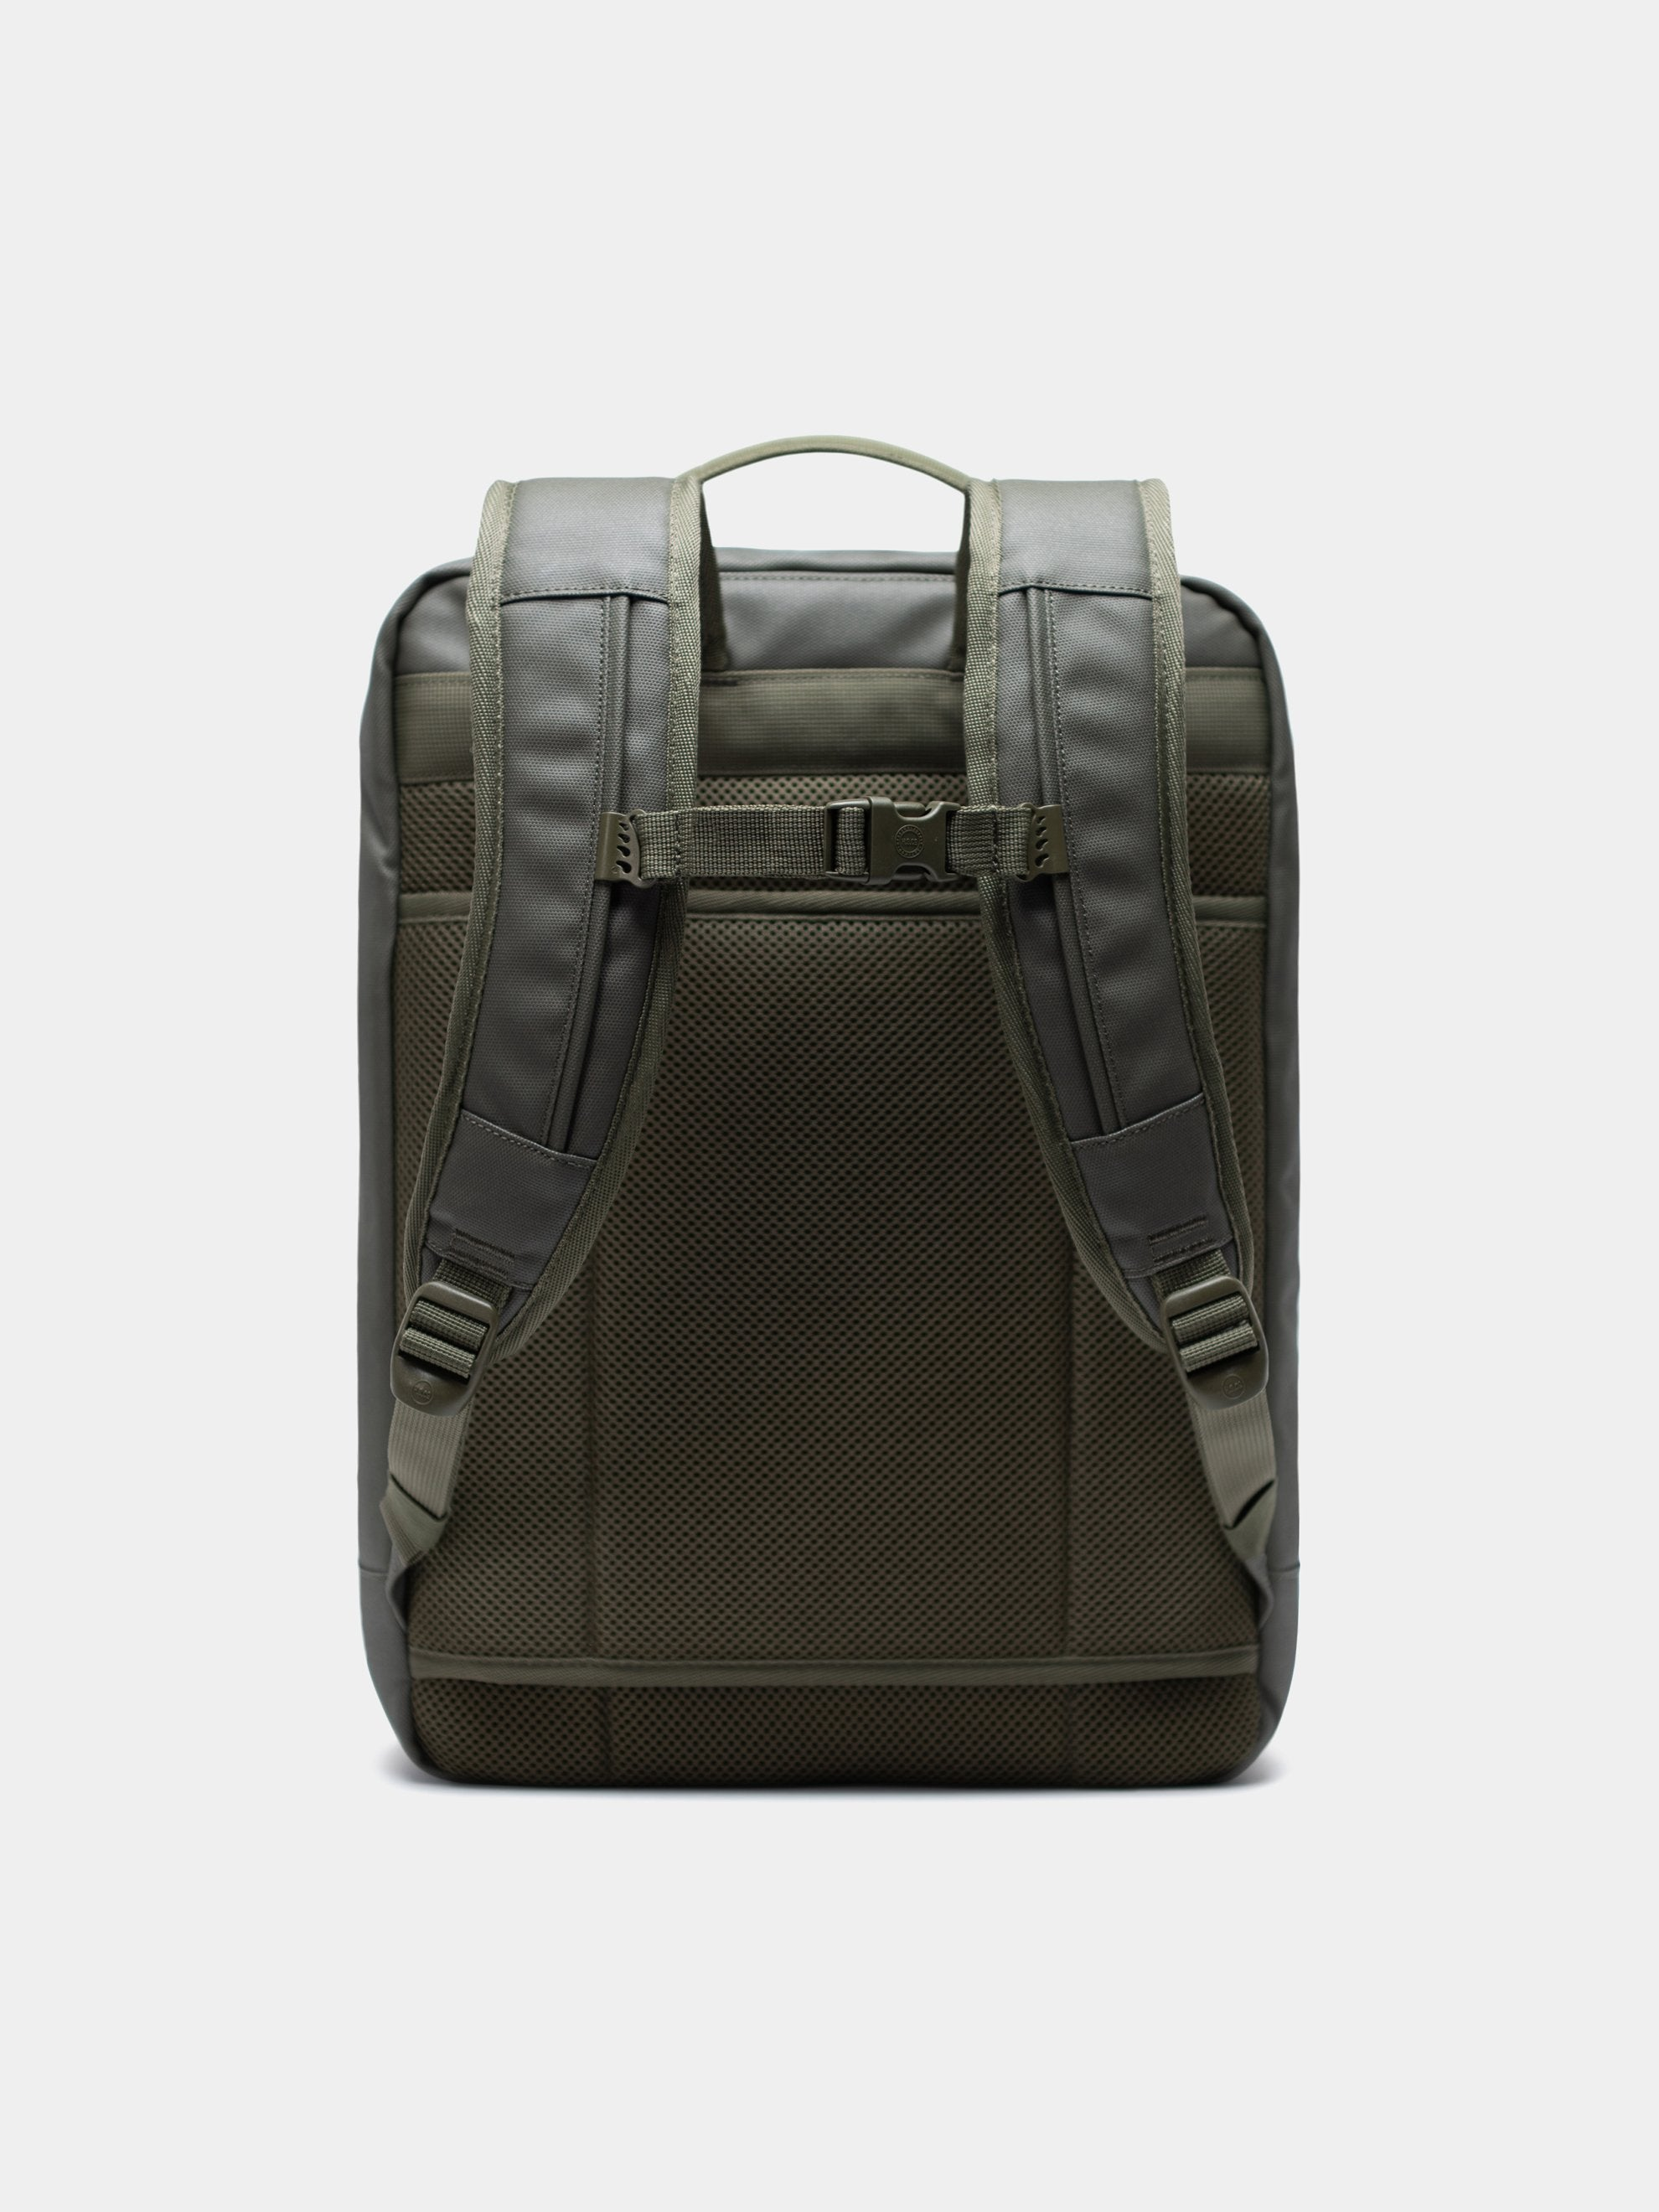 Burnt Olive Wtaps x Herschel Vessel Bag 5